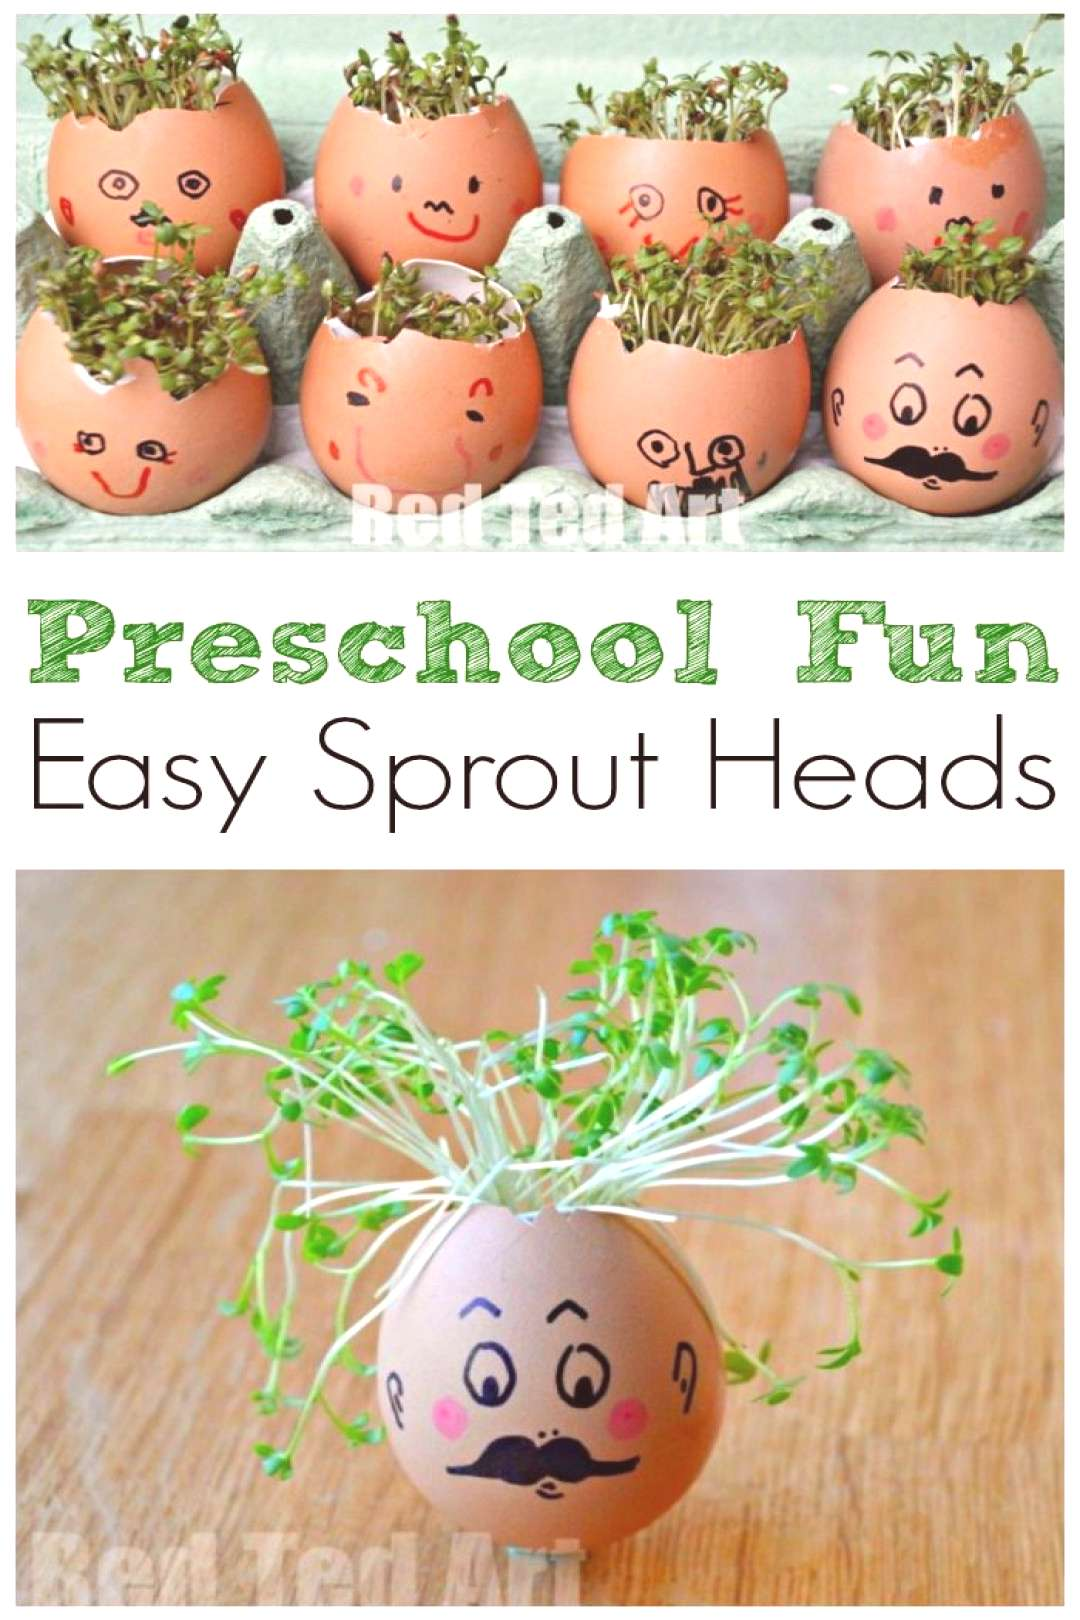 Easy Preschool Activity for Spring. Preschool STEAM activity. Cress heads how to. Sprout heads.